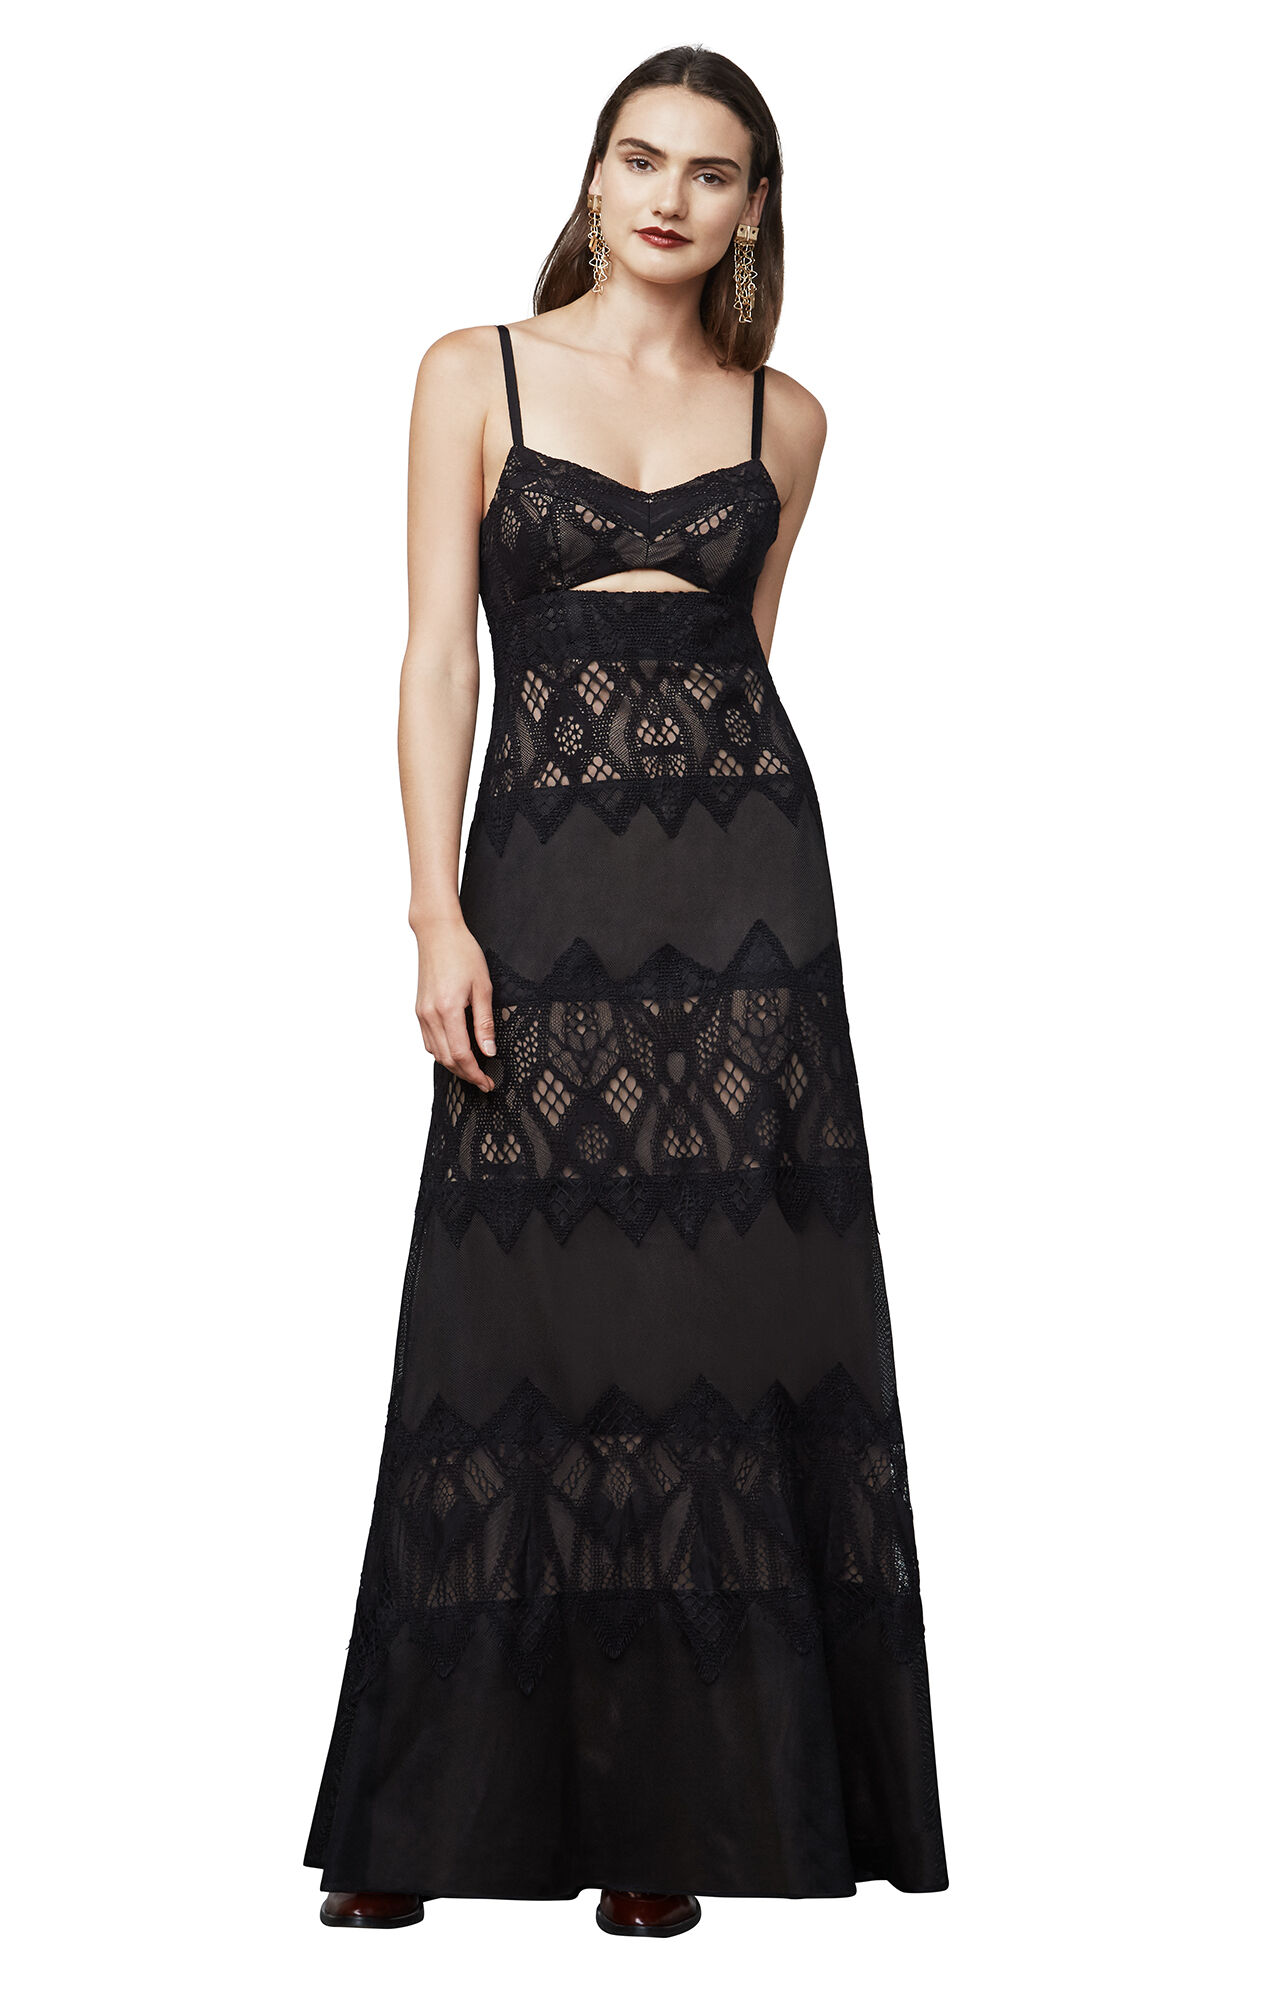 Alese Lace Gown